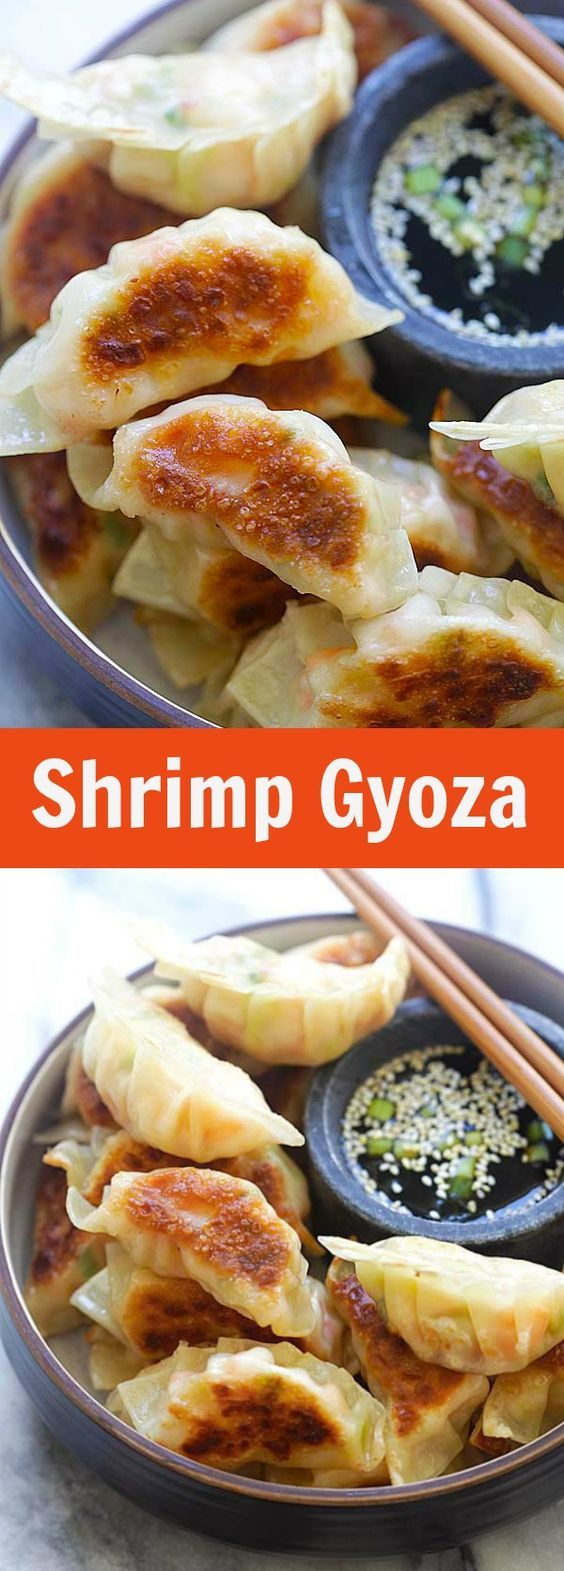 Shrimp Gyoza - amazing Japanese gyoza dumplings filled with shrimp and cabbage. Crispy, juicy and so easy to make at home. | rasamalaysia.com http://amzn.to/2pWJhBV